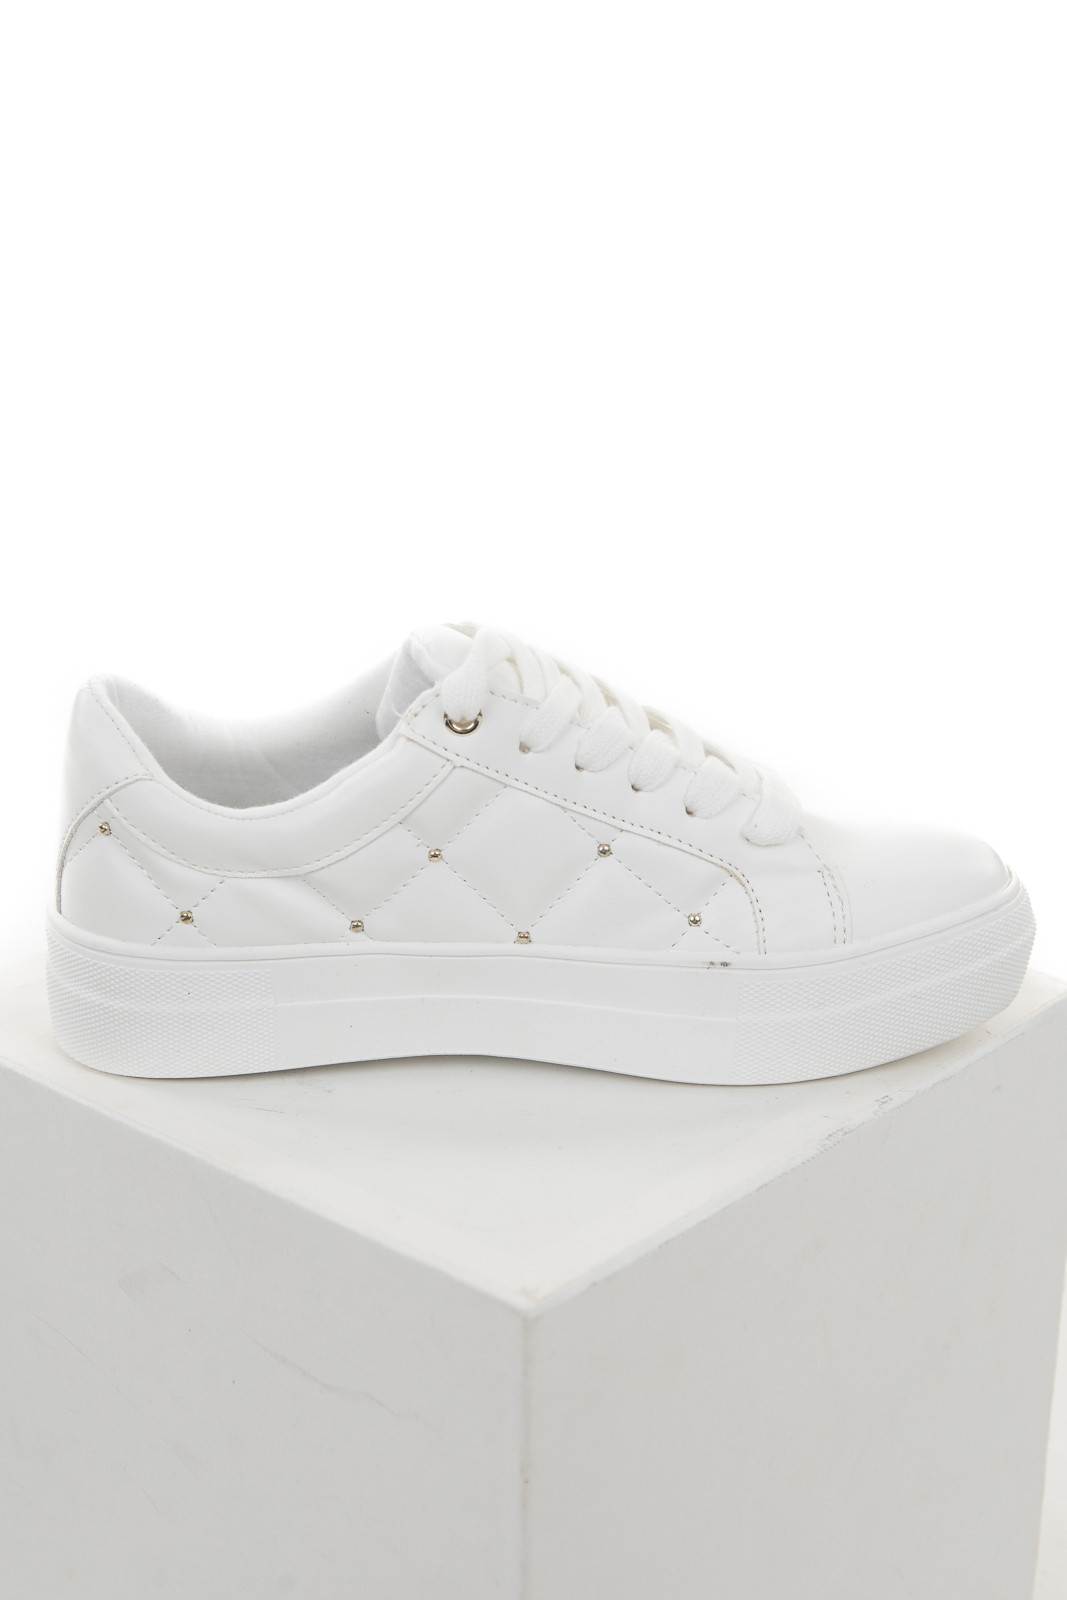 Off White Diamond Quilted Rubber Sneakers with Laces